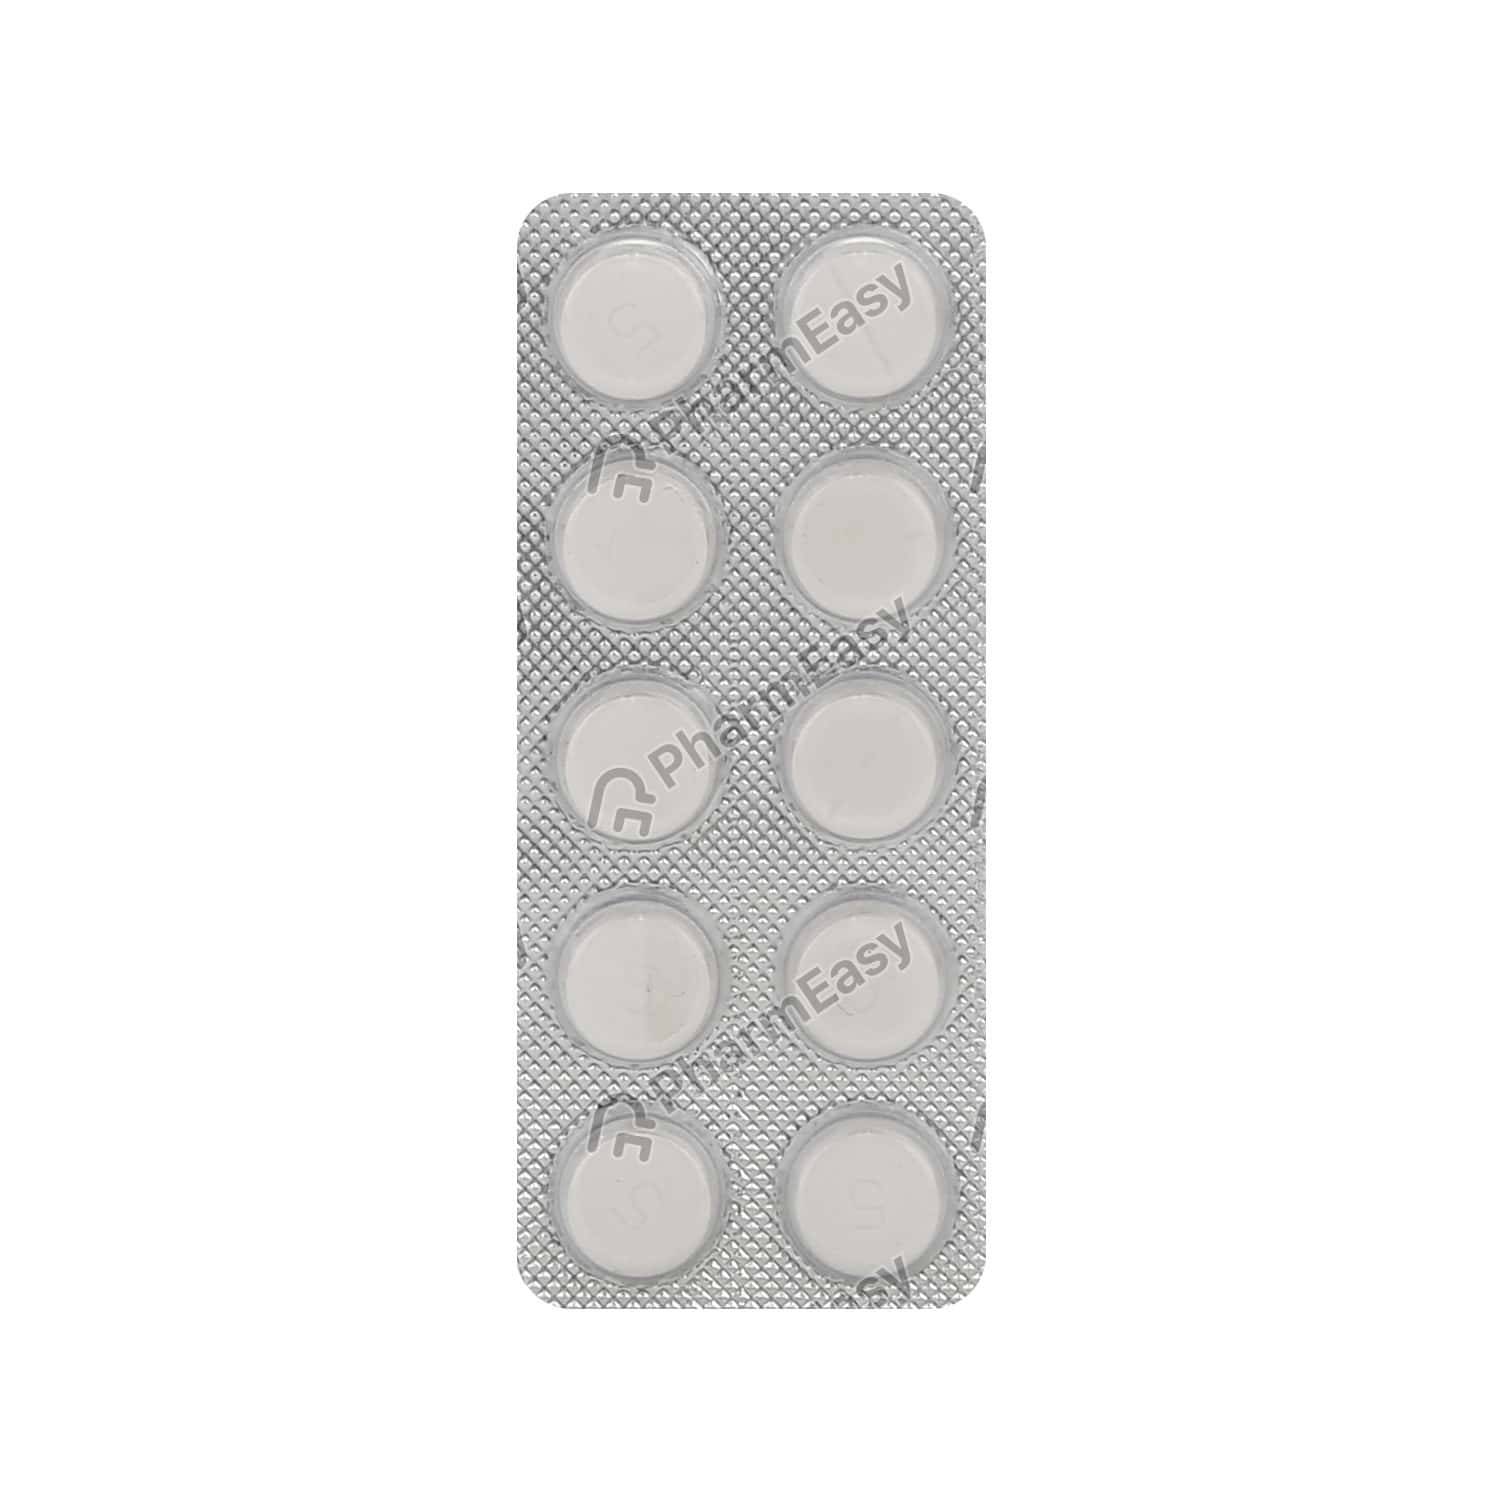 Amlopin 5mg Strip Of 10 Tablets